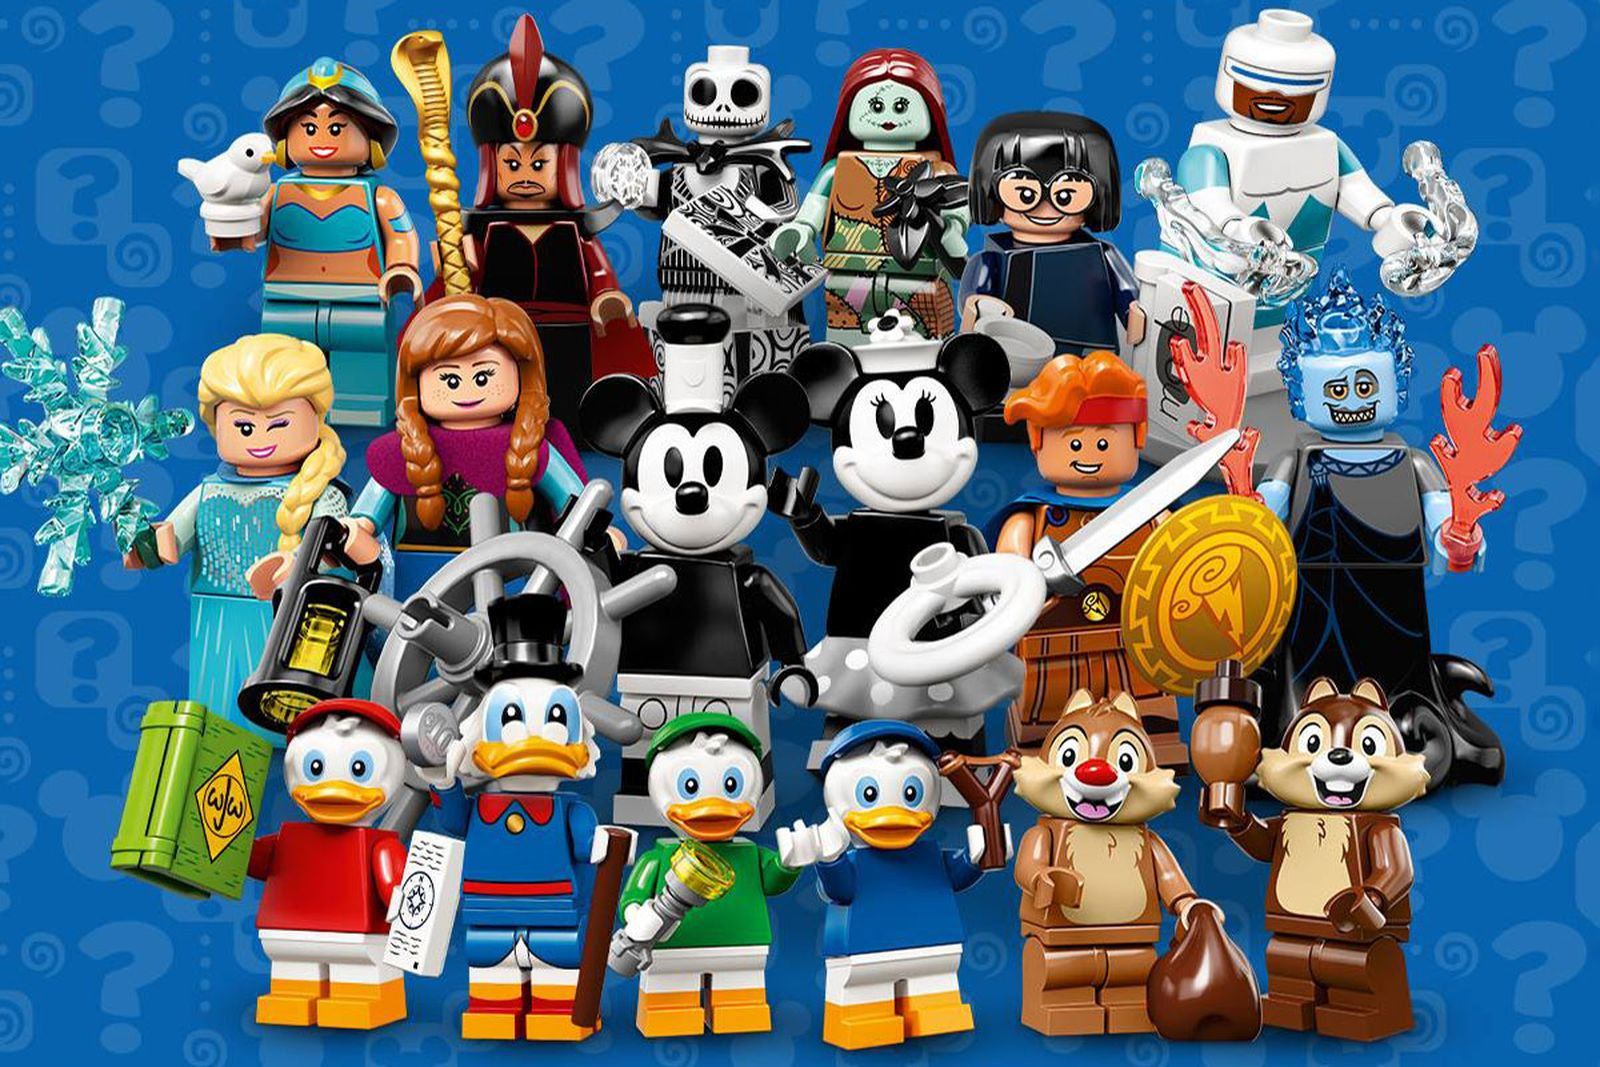 Disney X Lego Ideas Team Up For 18 New Minifigures